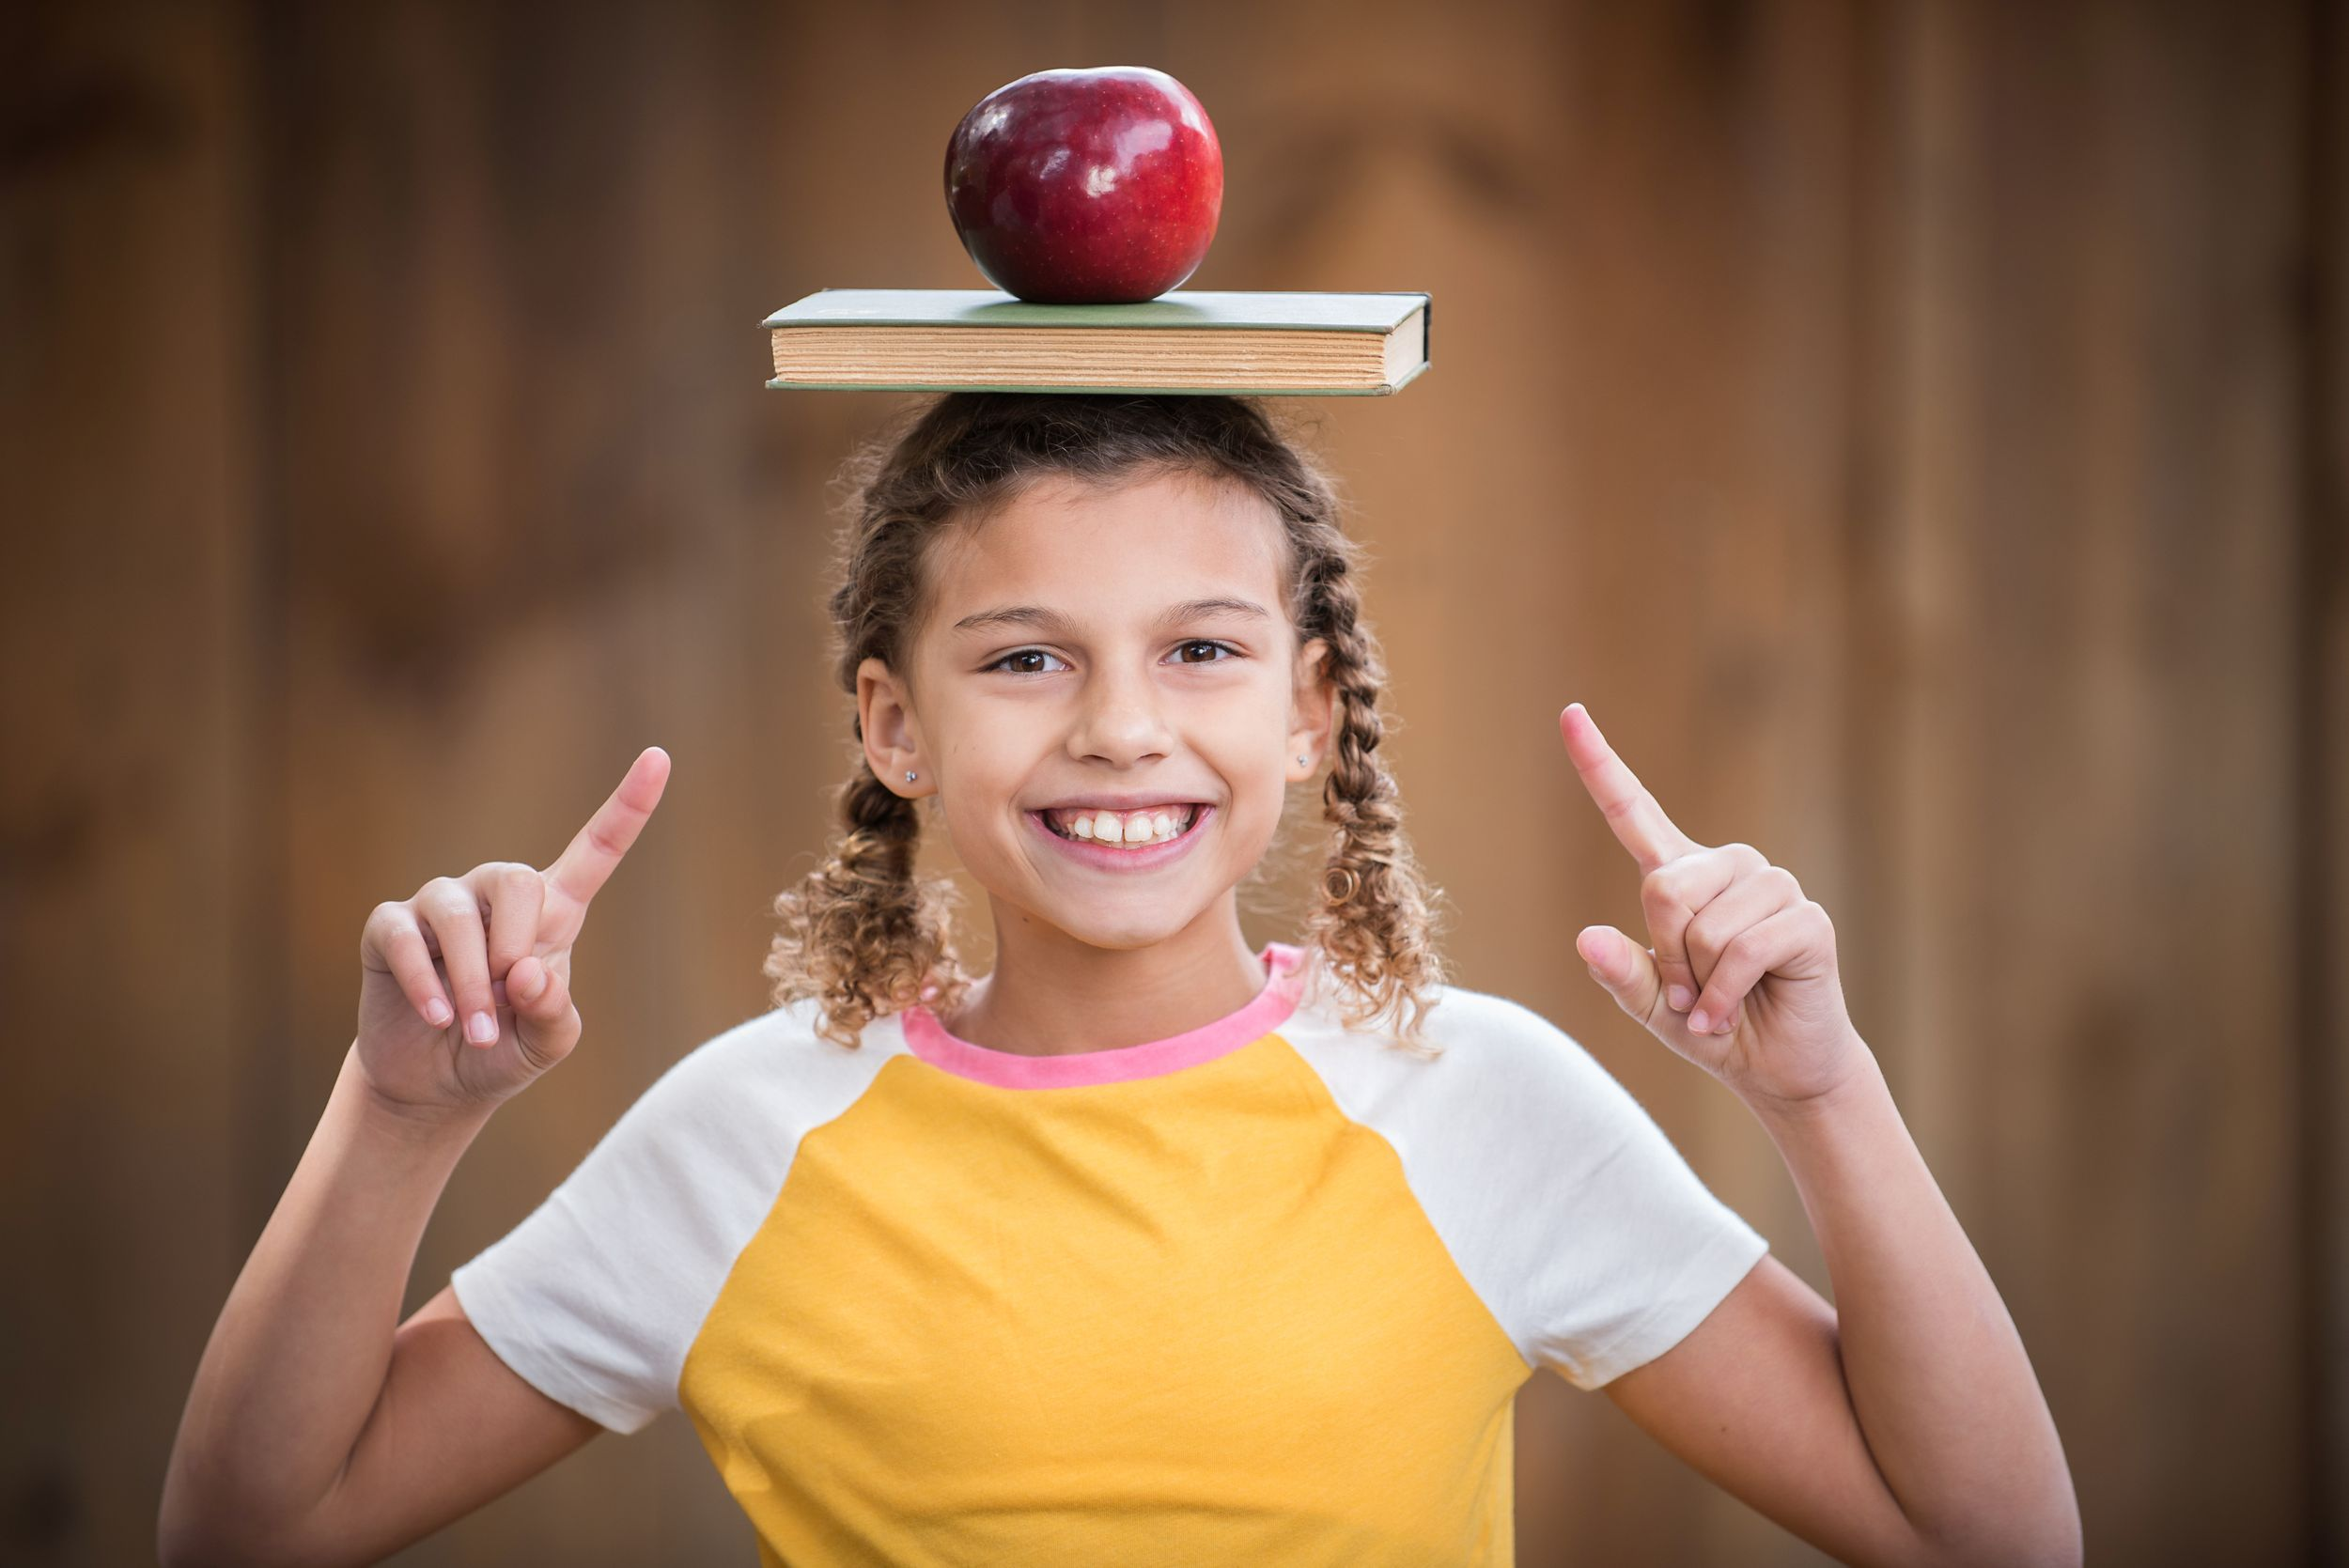 Tween girl back to school look with books and apple balanced on head